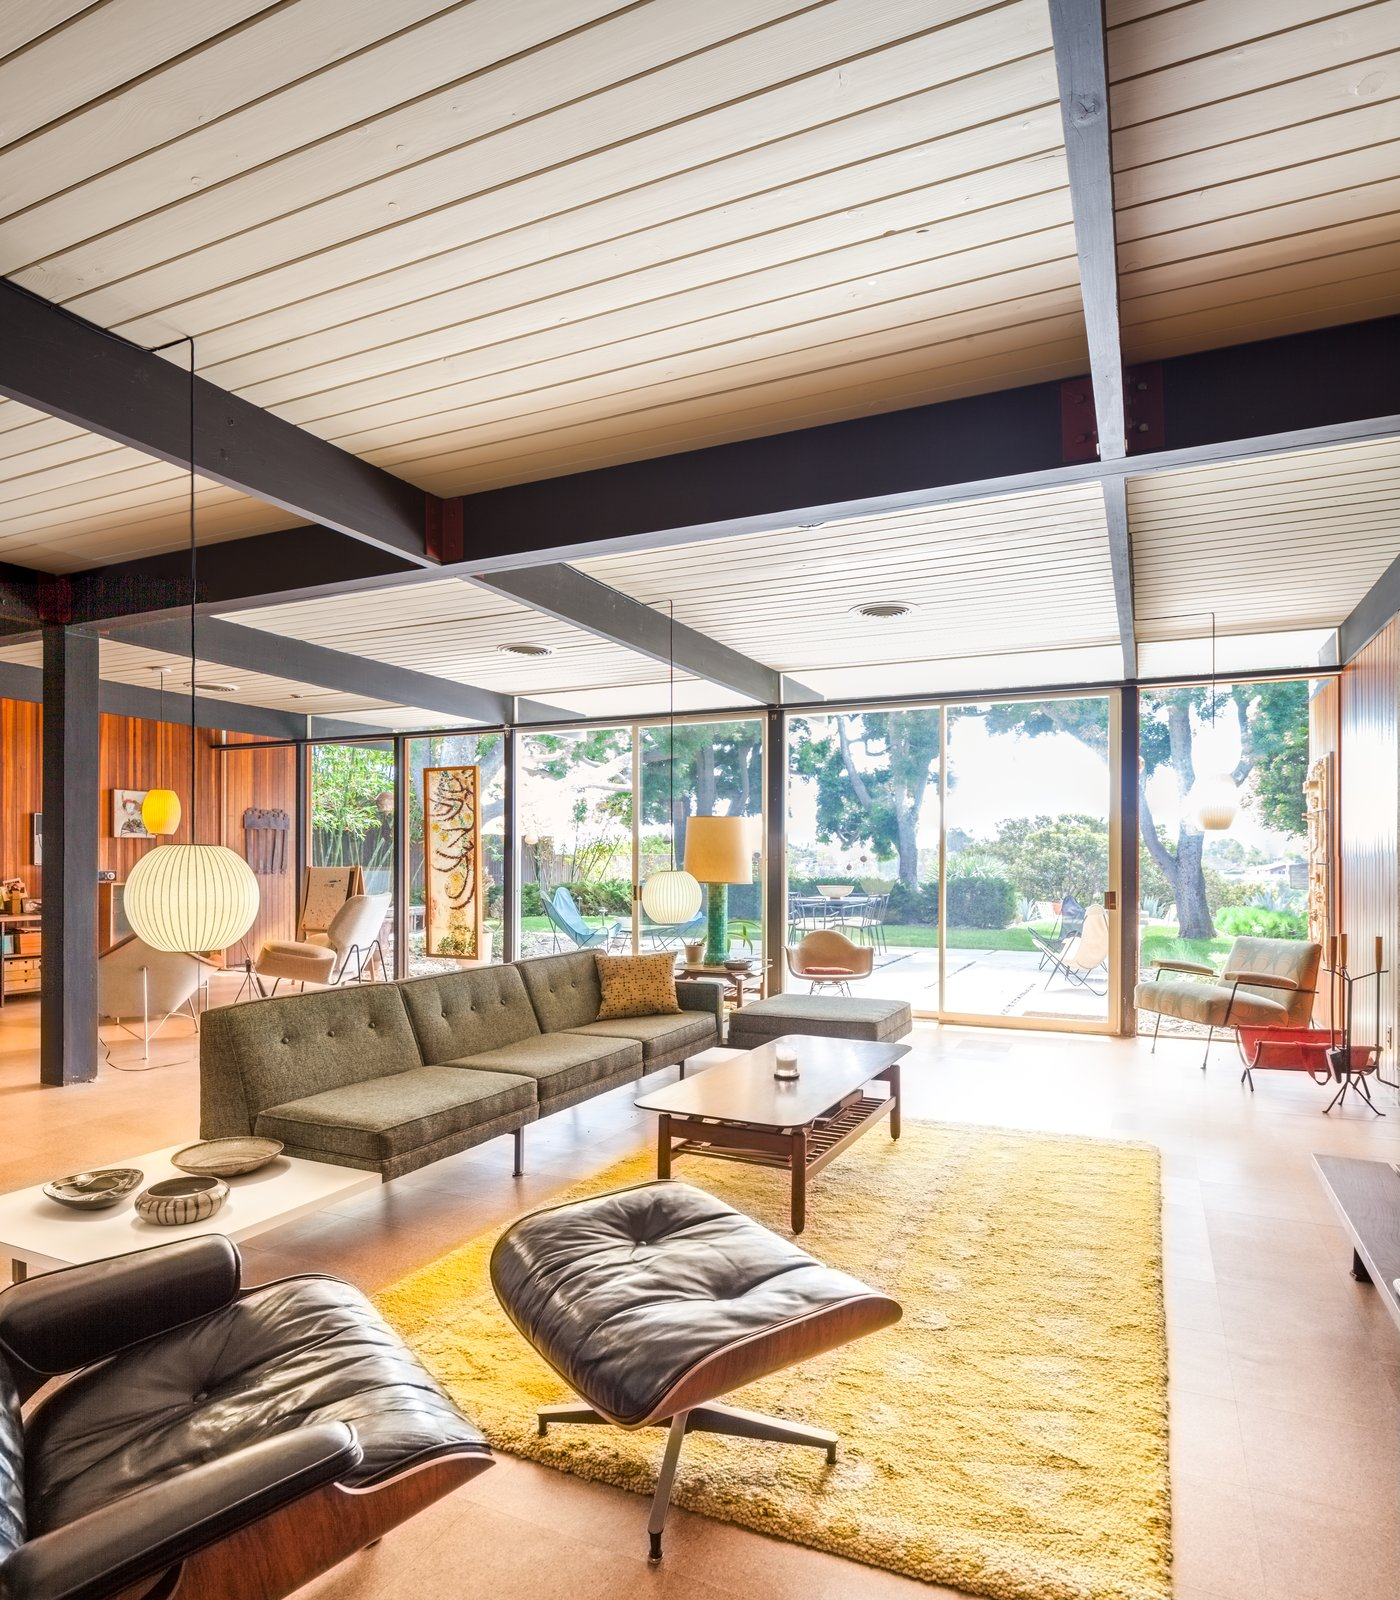 Living Room, Sofa, End Tables, Coffee Tables, Pendant Lighting, and Cork Floor  Photo 3 of 10 in A Stunningly Restored Midcentury by Case Study Architect Craig Ellwood Asks $800K in San Diego